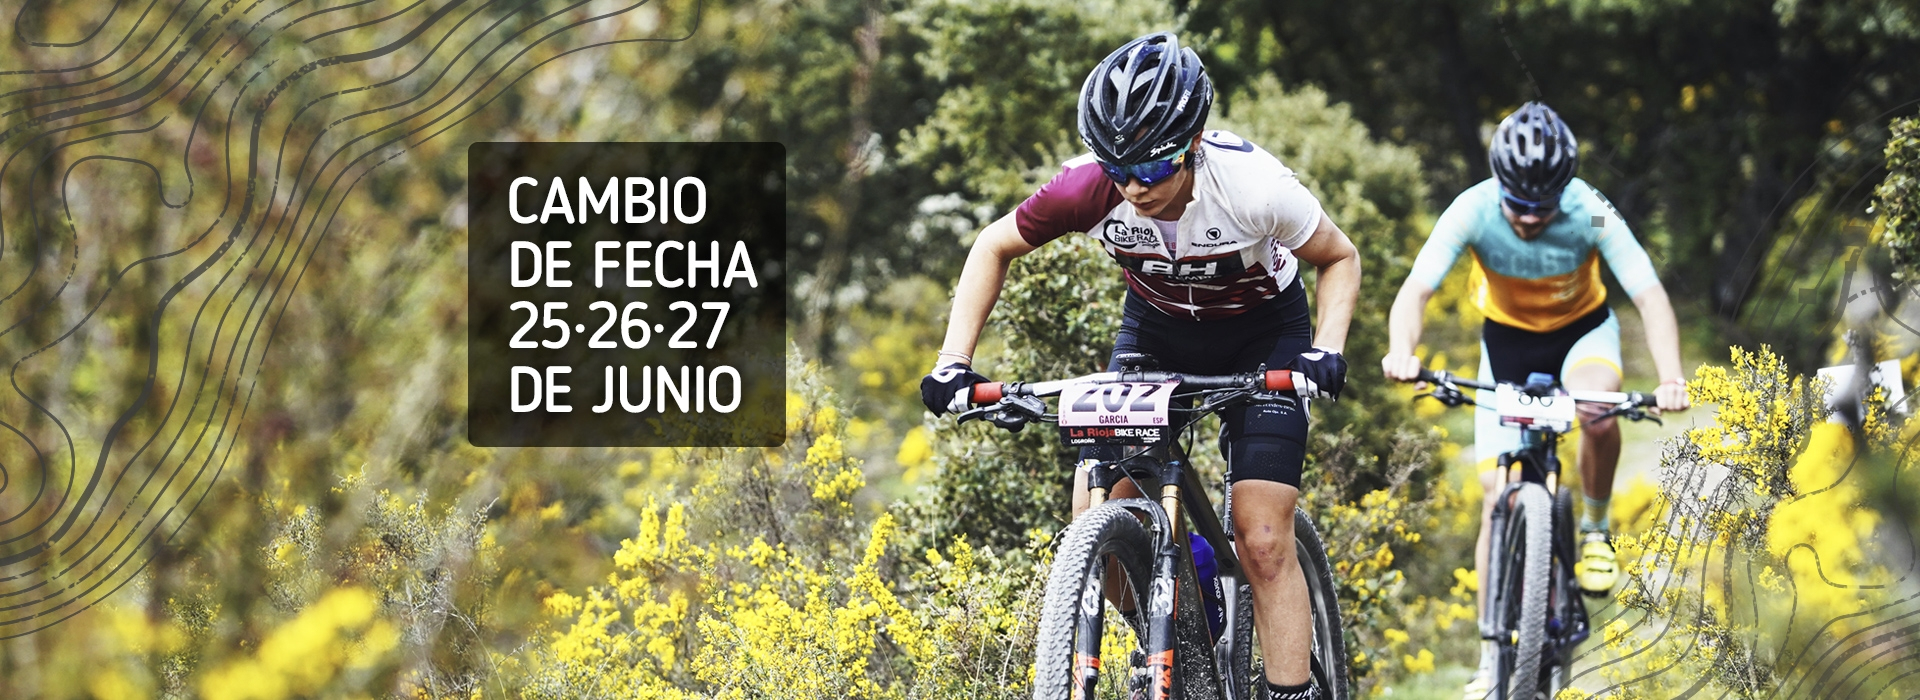 La Rioja Bike Race presented by Pirelli postponed until June